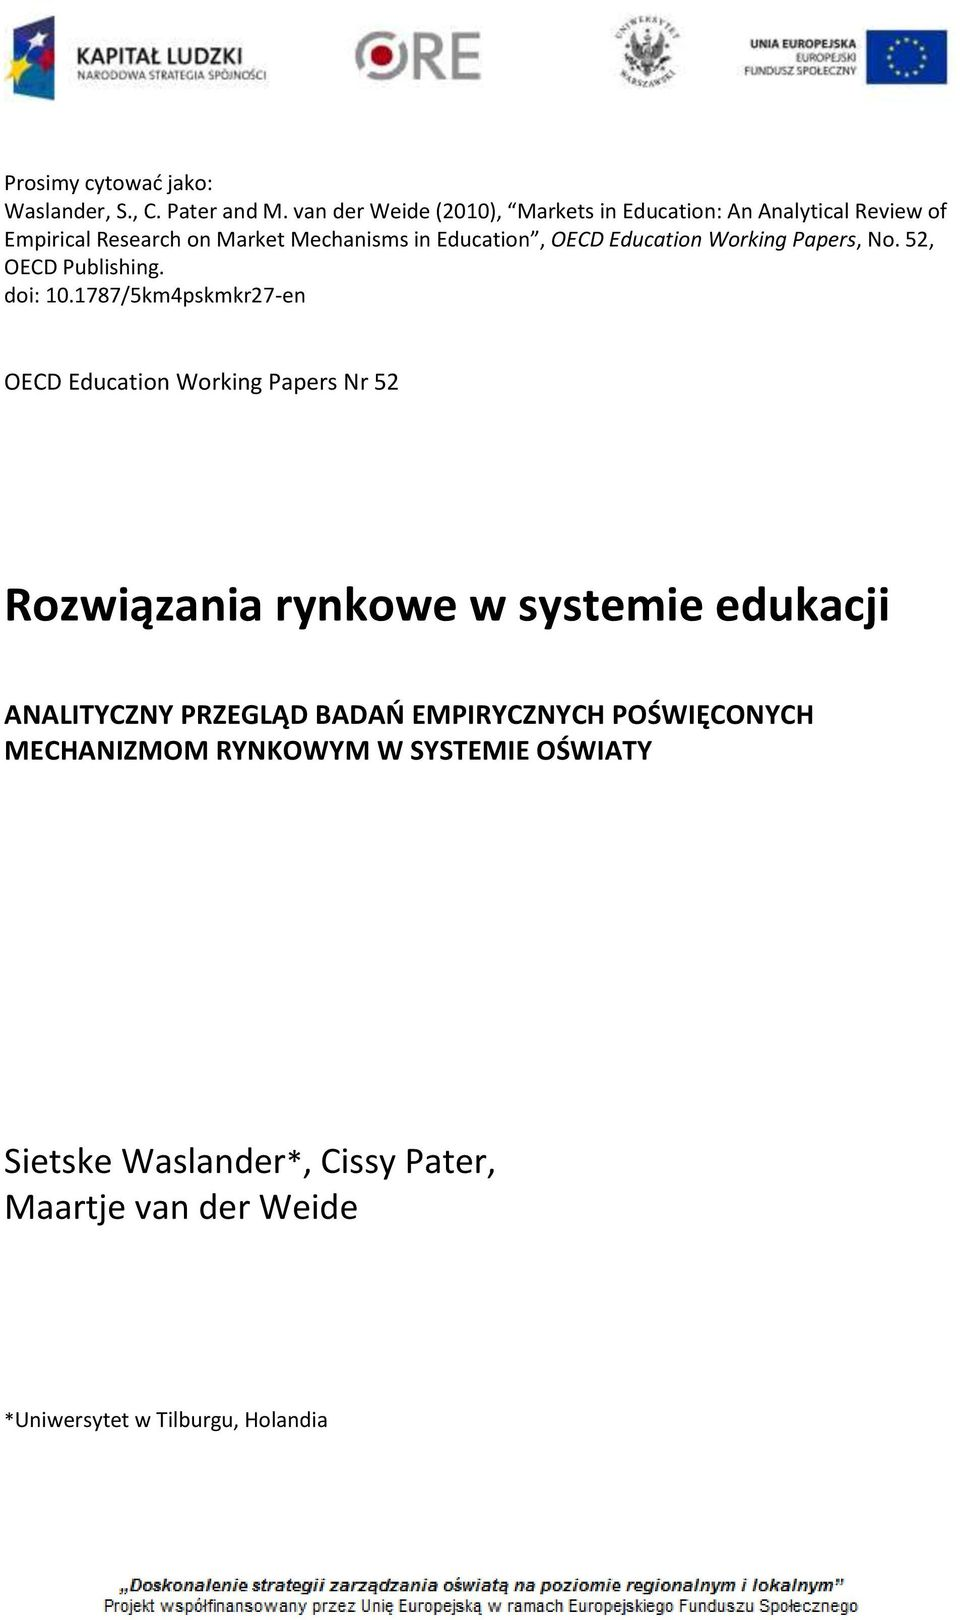 Education Working Papers, No. 52, OECD Publishing. doi: 10.